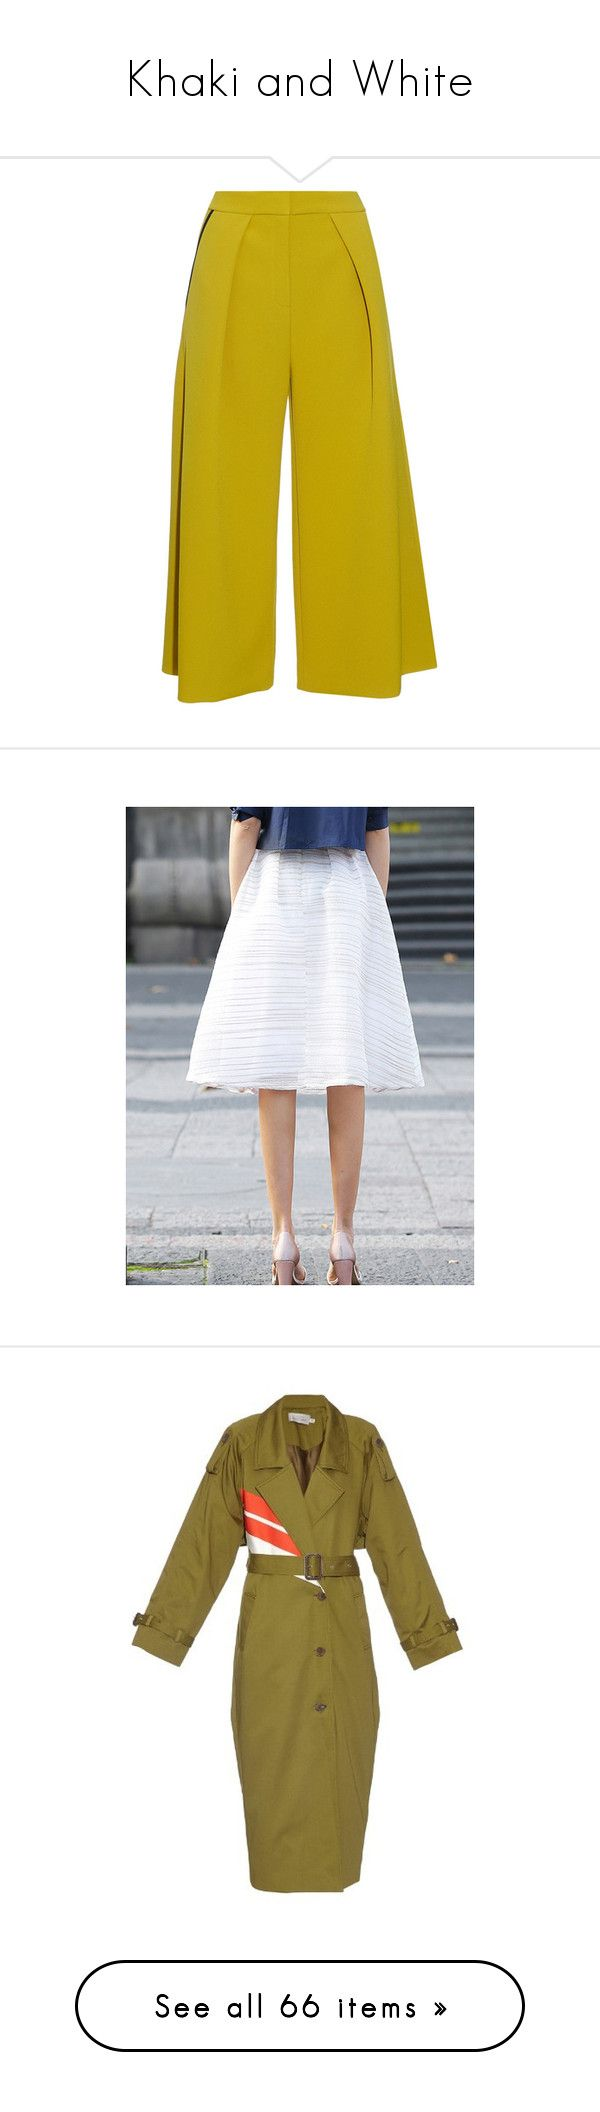 """""""Khaki and White"""" by english-thea ❤ liked on Polyvore featuring pants, bottoms, trousers, shorts, light khaki, olive green pants, wide-leg pants, summer pants, olive khaki pants and wide-leg trousers"""